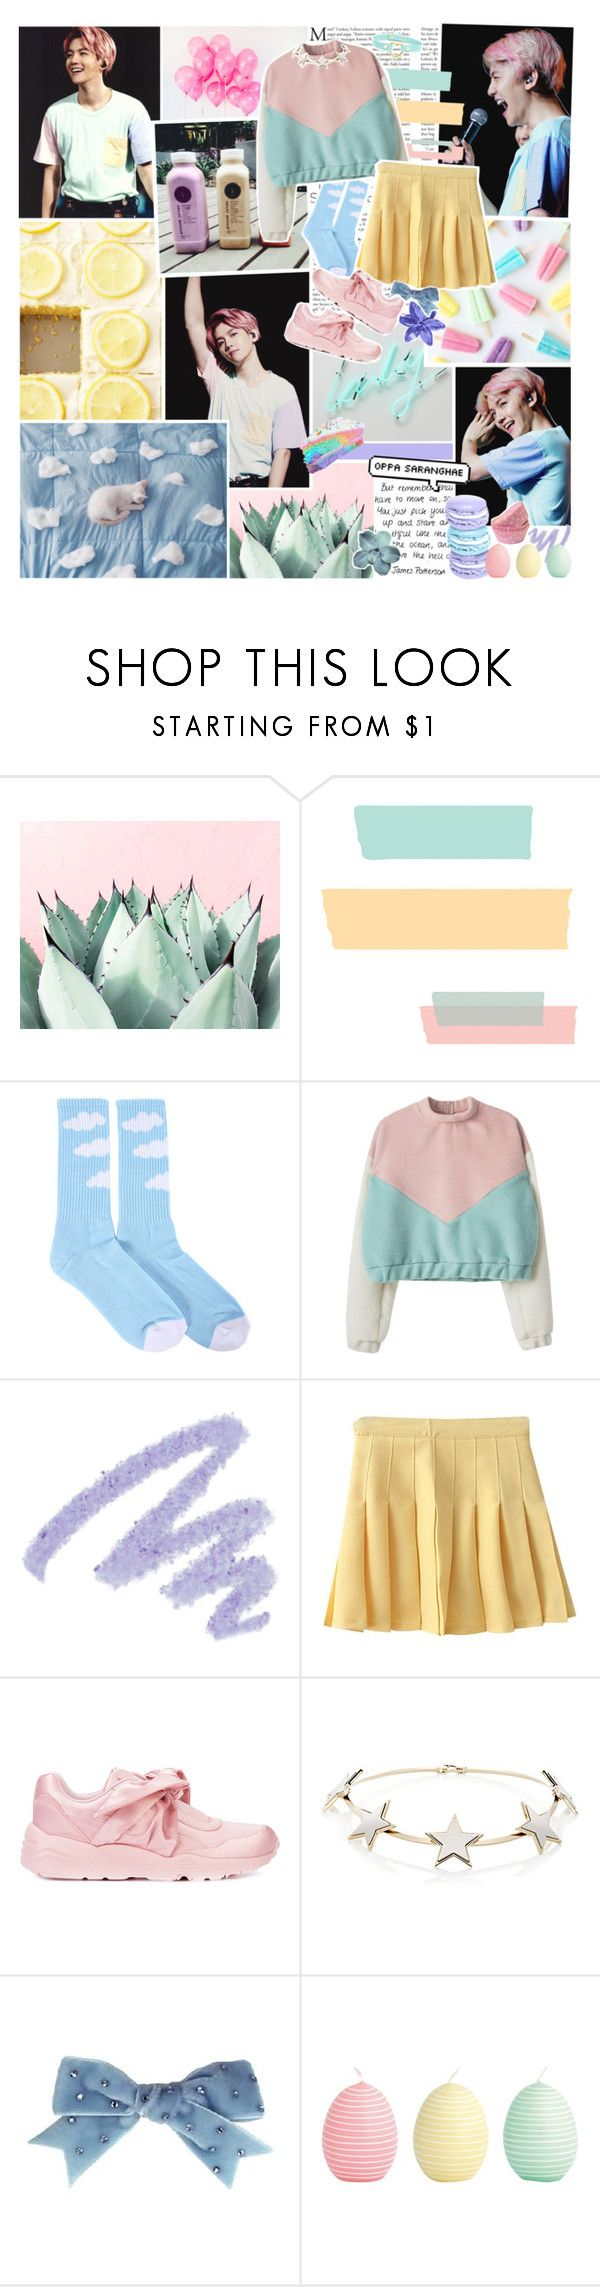 """❀ so lucky to have you ❀"" by indie-fox ❤ liked on Polyvore featuring ODD FUTURE, Yves Saint Laurent, Puma, Givenchy, Tarina Tarantino, GreenGate, kpop, pastel, EXO and baekhyun"